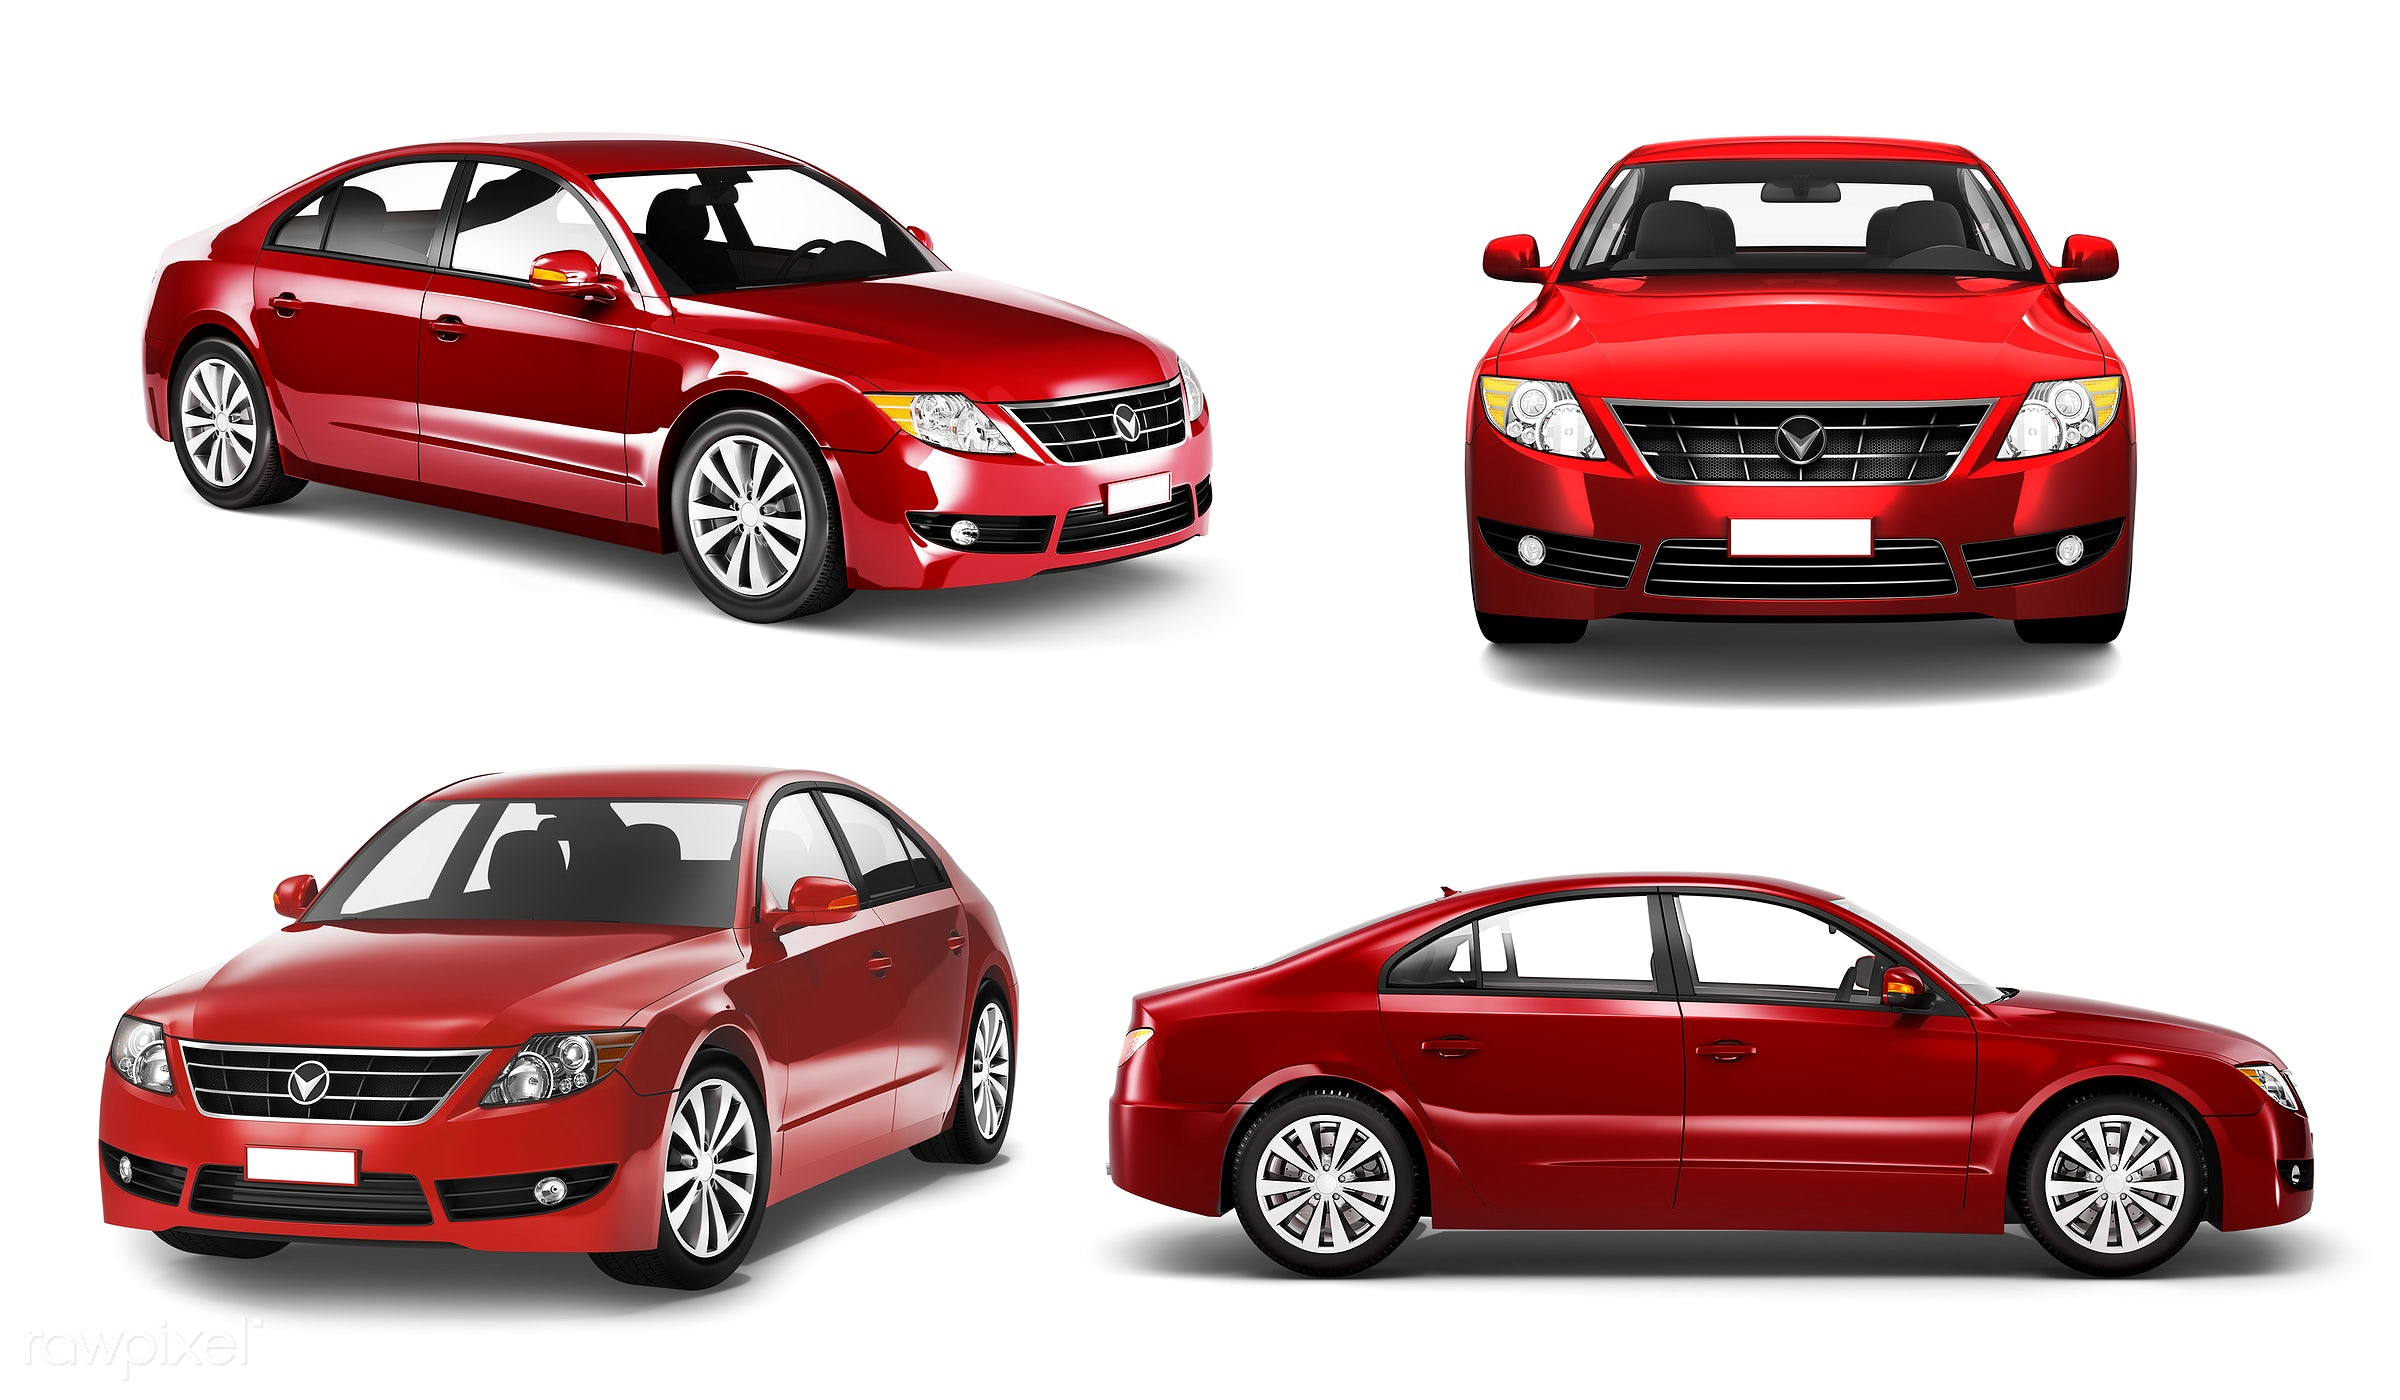 Three dimensional image of car - car, 3d, automobile, automotive, brandless, collection, concept car, graphic, holiday,...